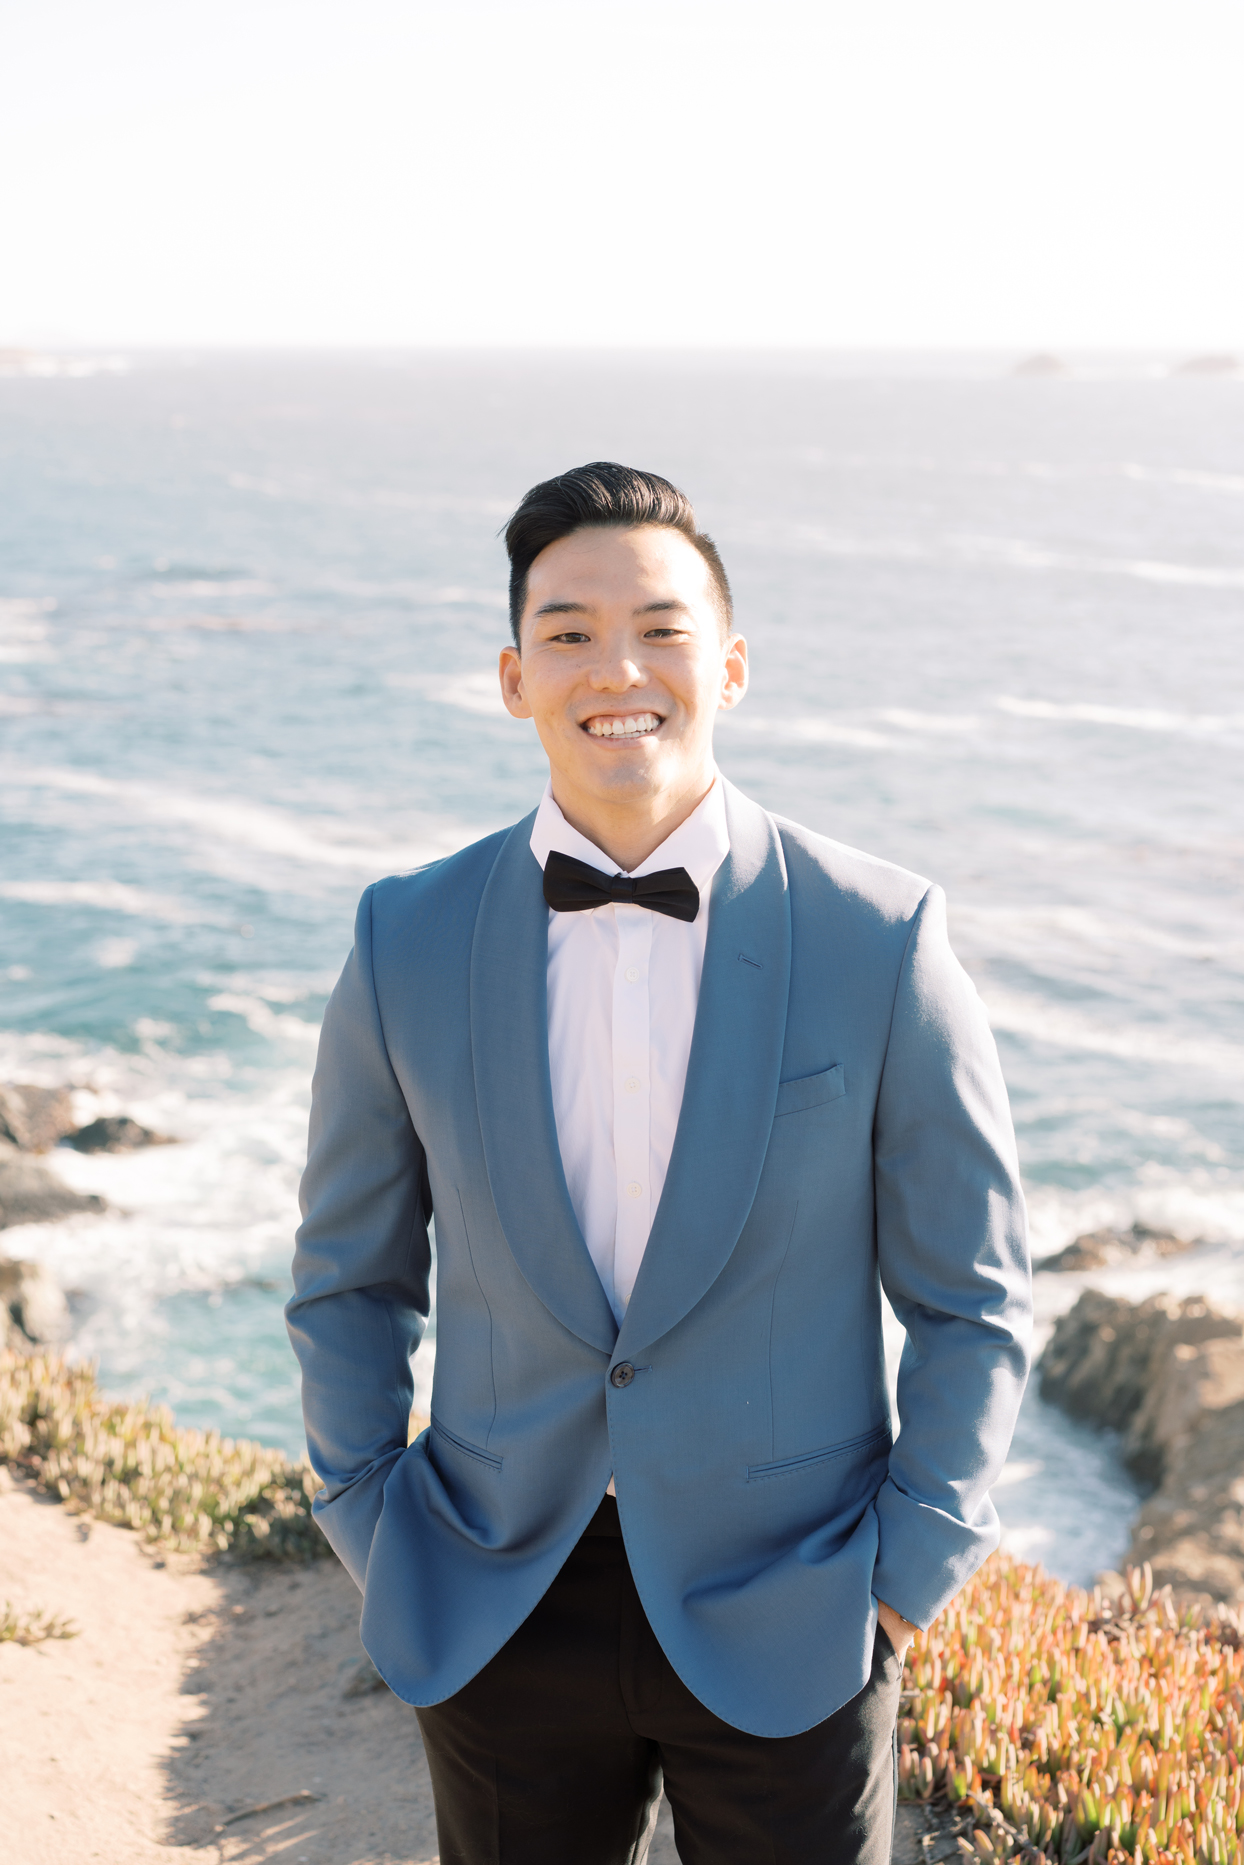 Groom in blue suit jacket and bowtie